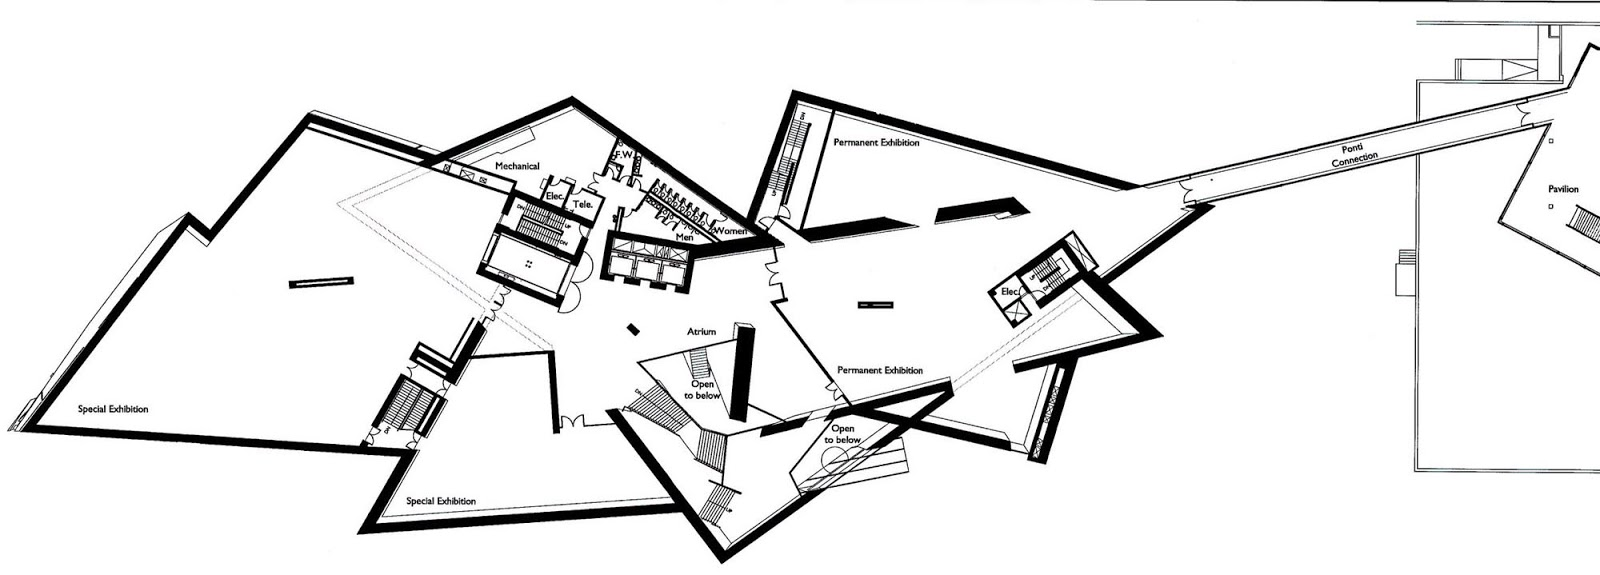 Bunk House Plans moreover 236227942924948996 also 24x24 Cabin Plans On Piers moreover S1 together with 653898 One 20story 203 20bedroom  204 20bath 20mediterranean 20style 20house 20plan. on modular home floor plans s c